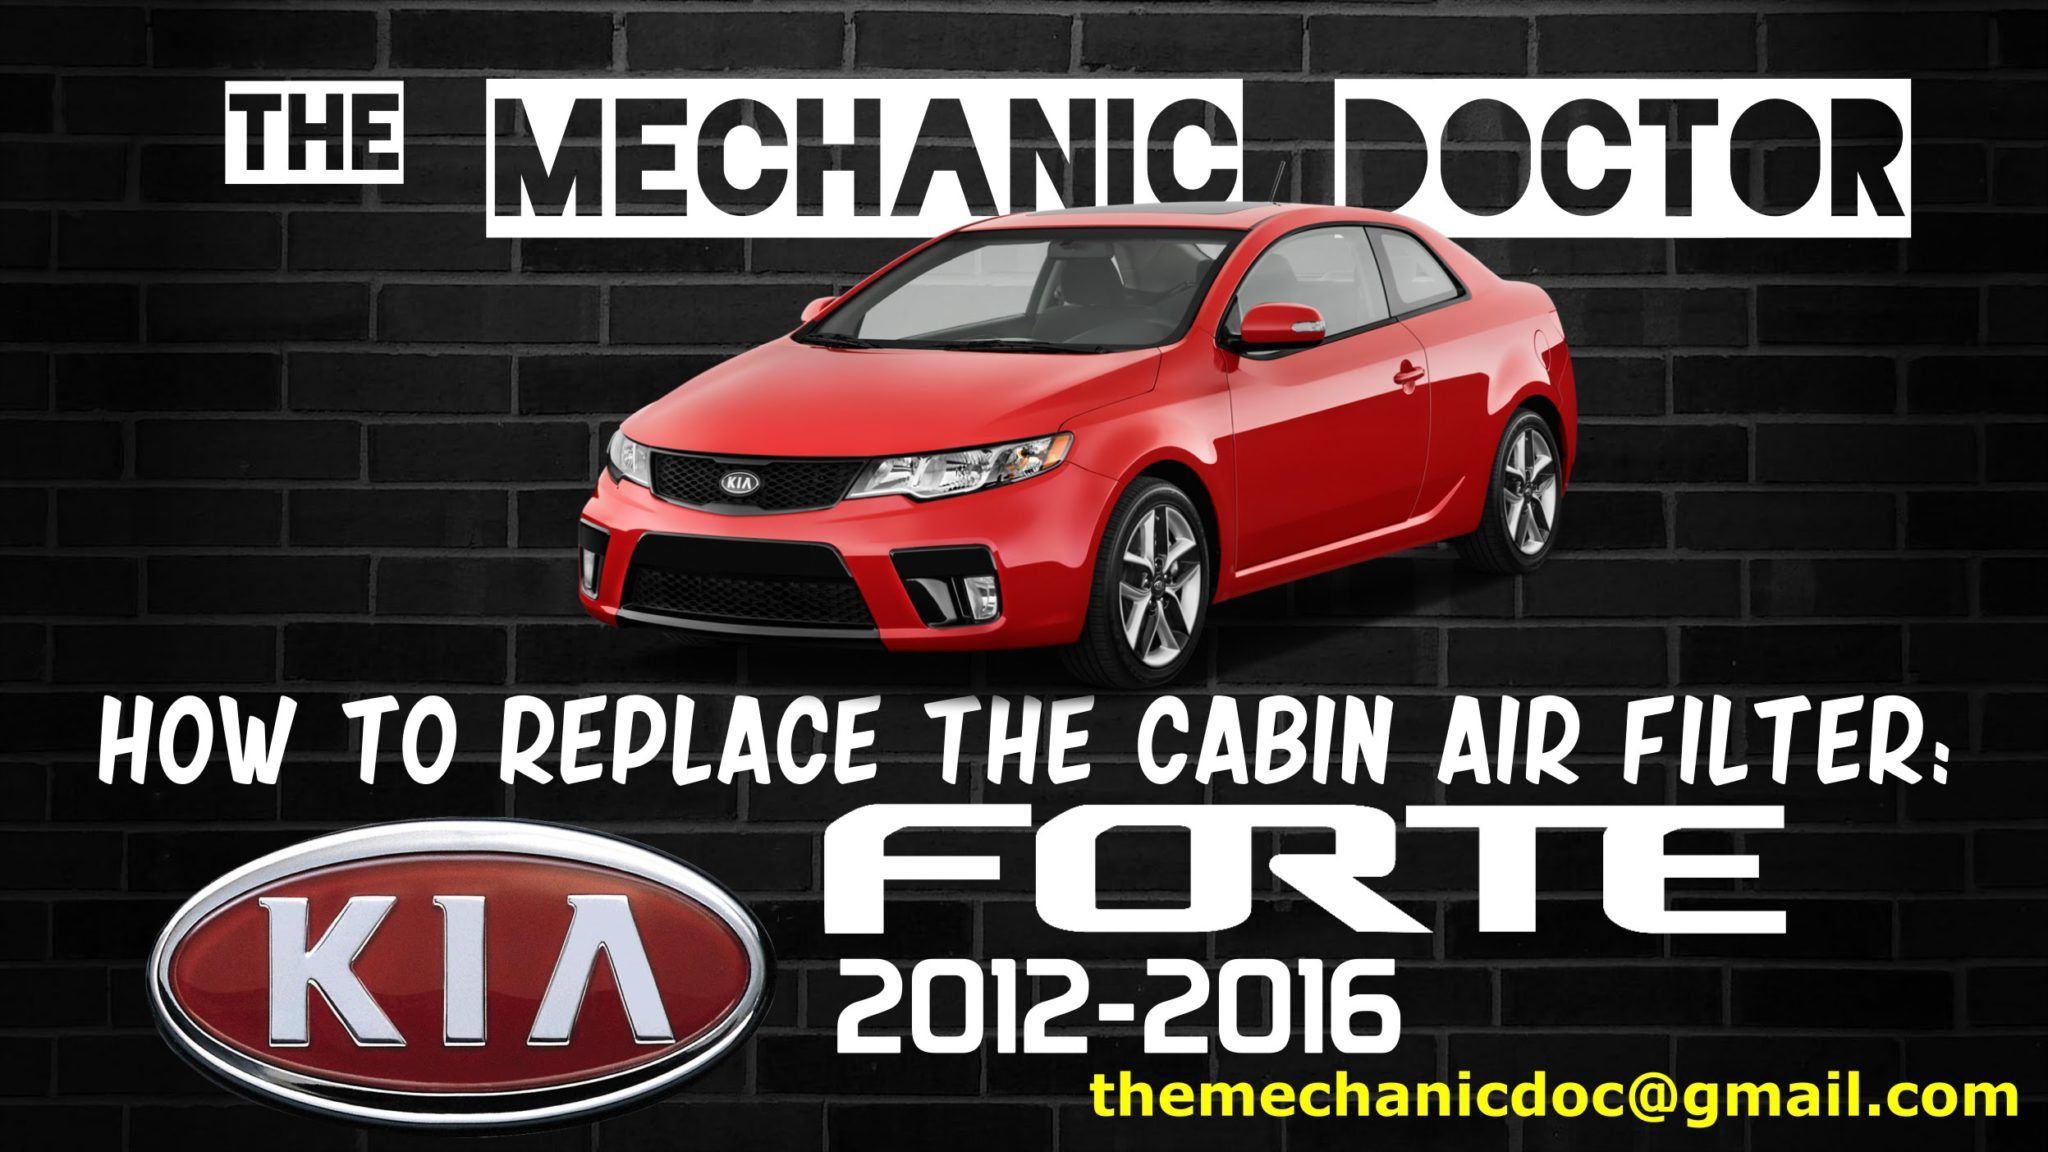 How to replace the cabin air filter Kia Forte 2012, 2013